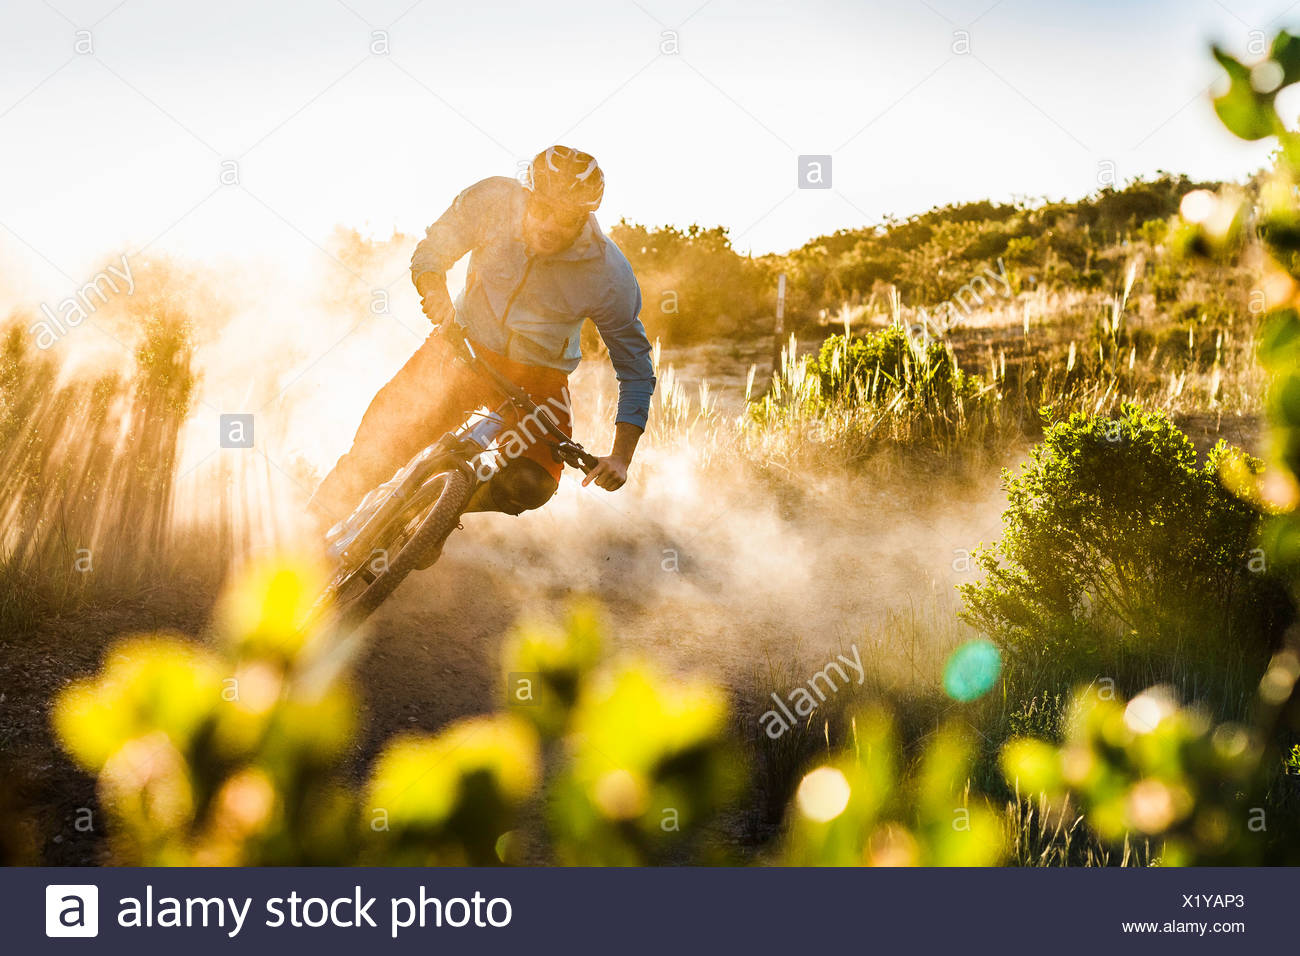 Young man mountain biking, Monterey, California, USA - Stock Image